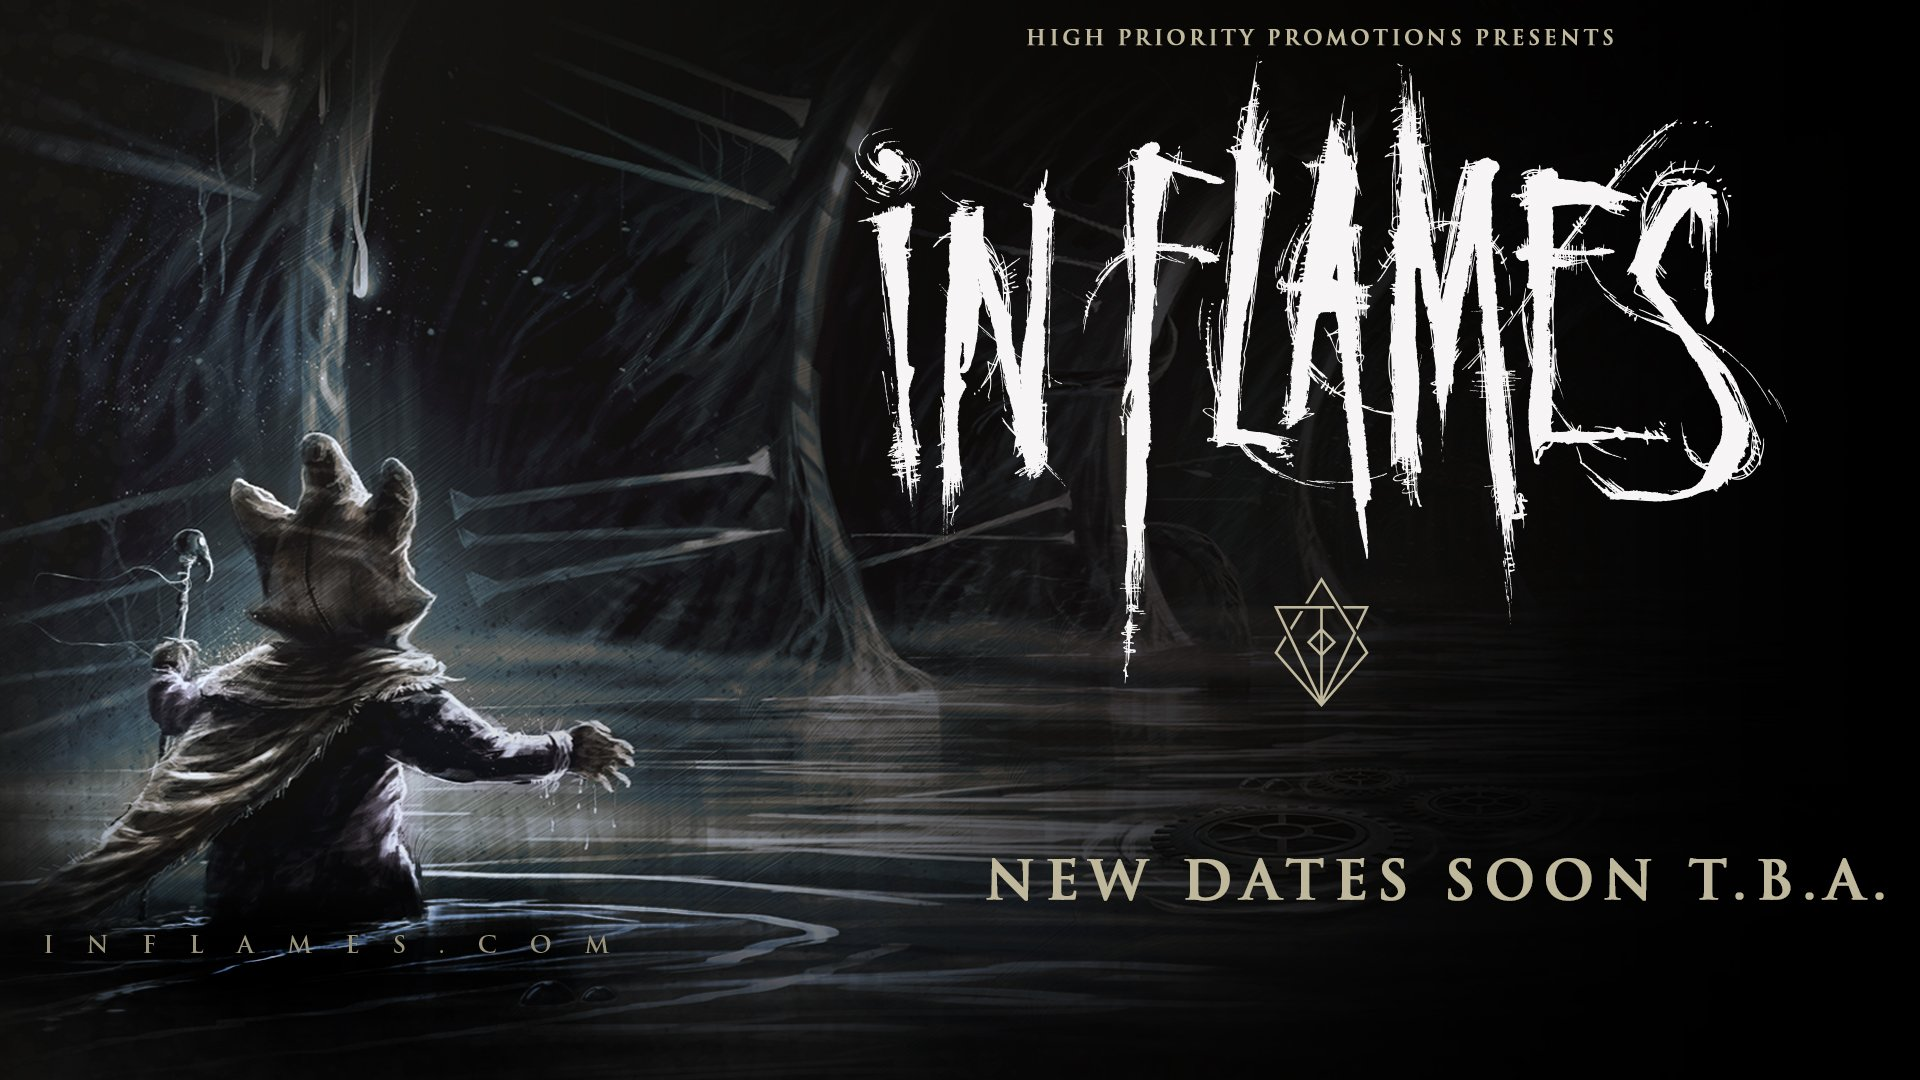 INFLAMES1920X1080ATHENS